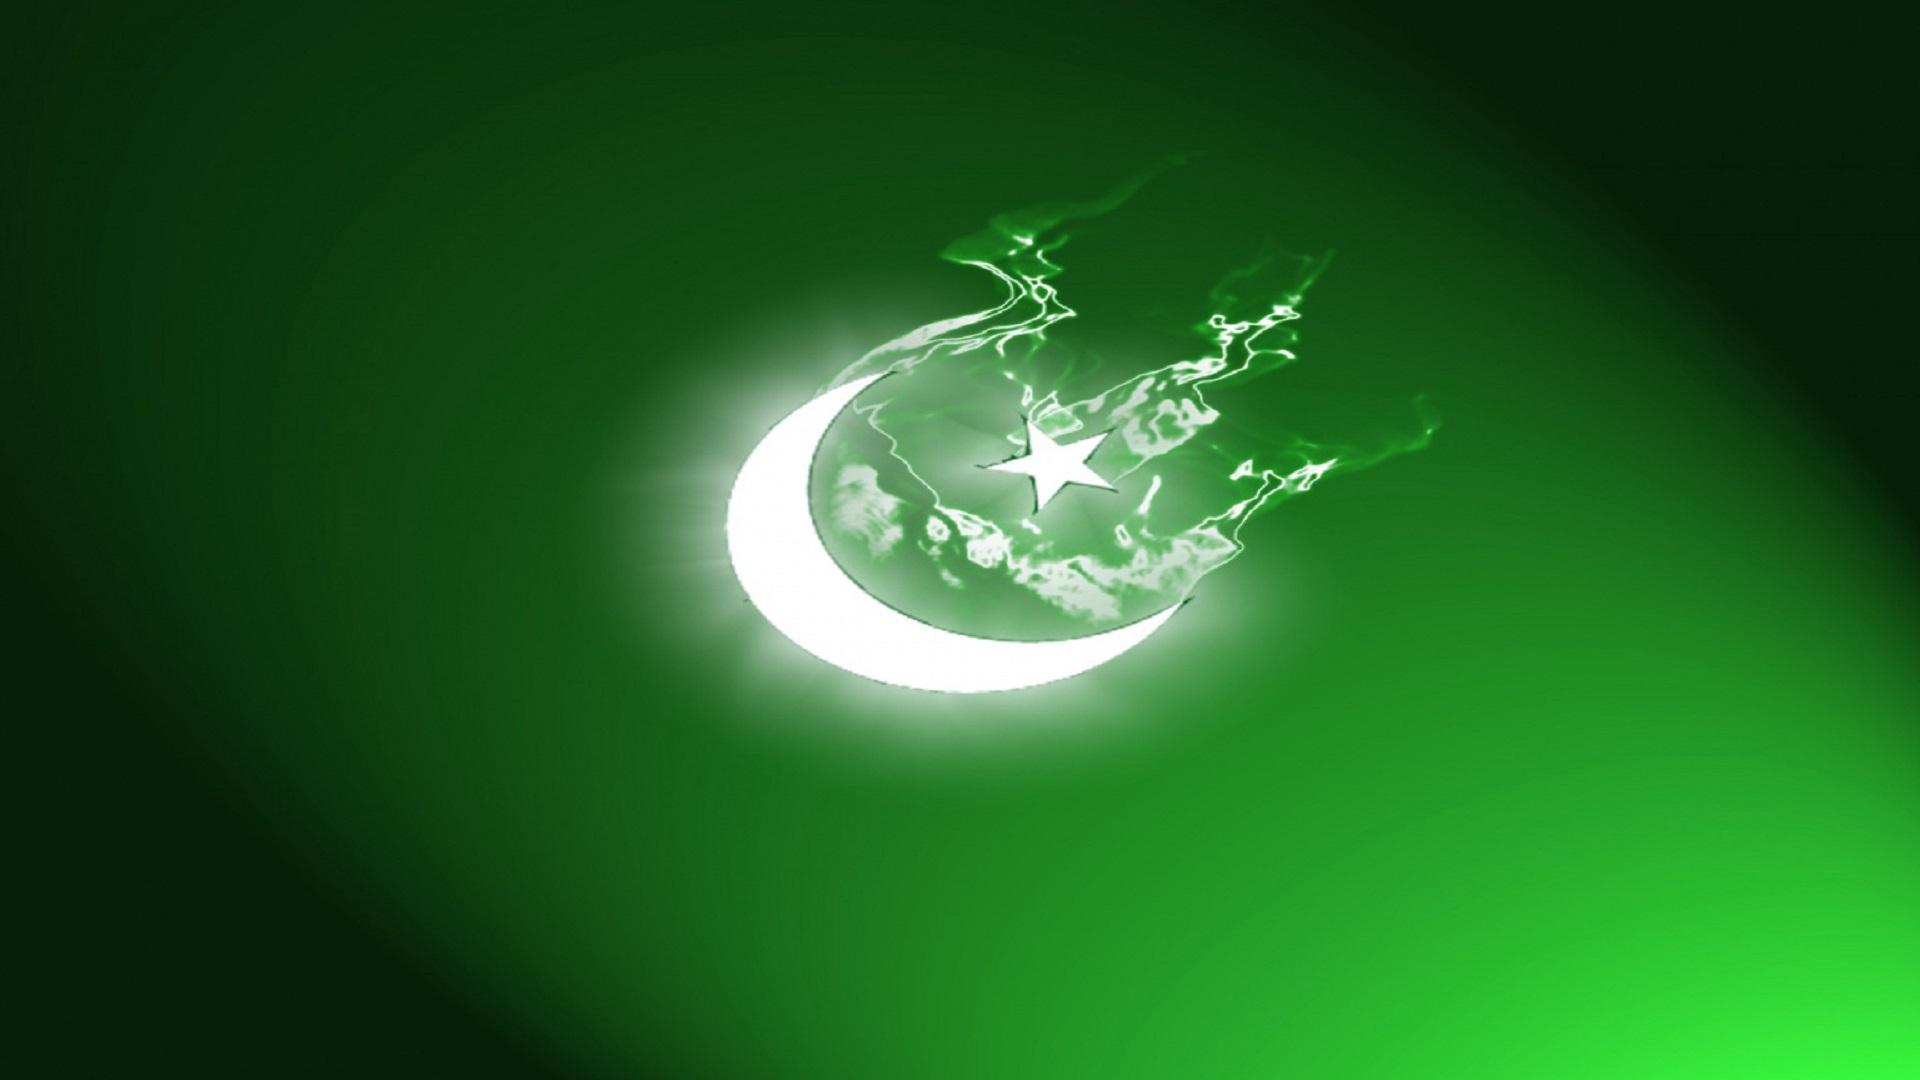 animatedflagfreehdwallpaperstoppakistani hd wallpaper